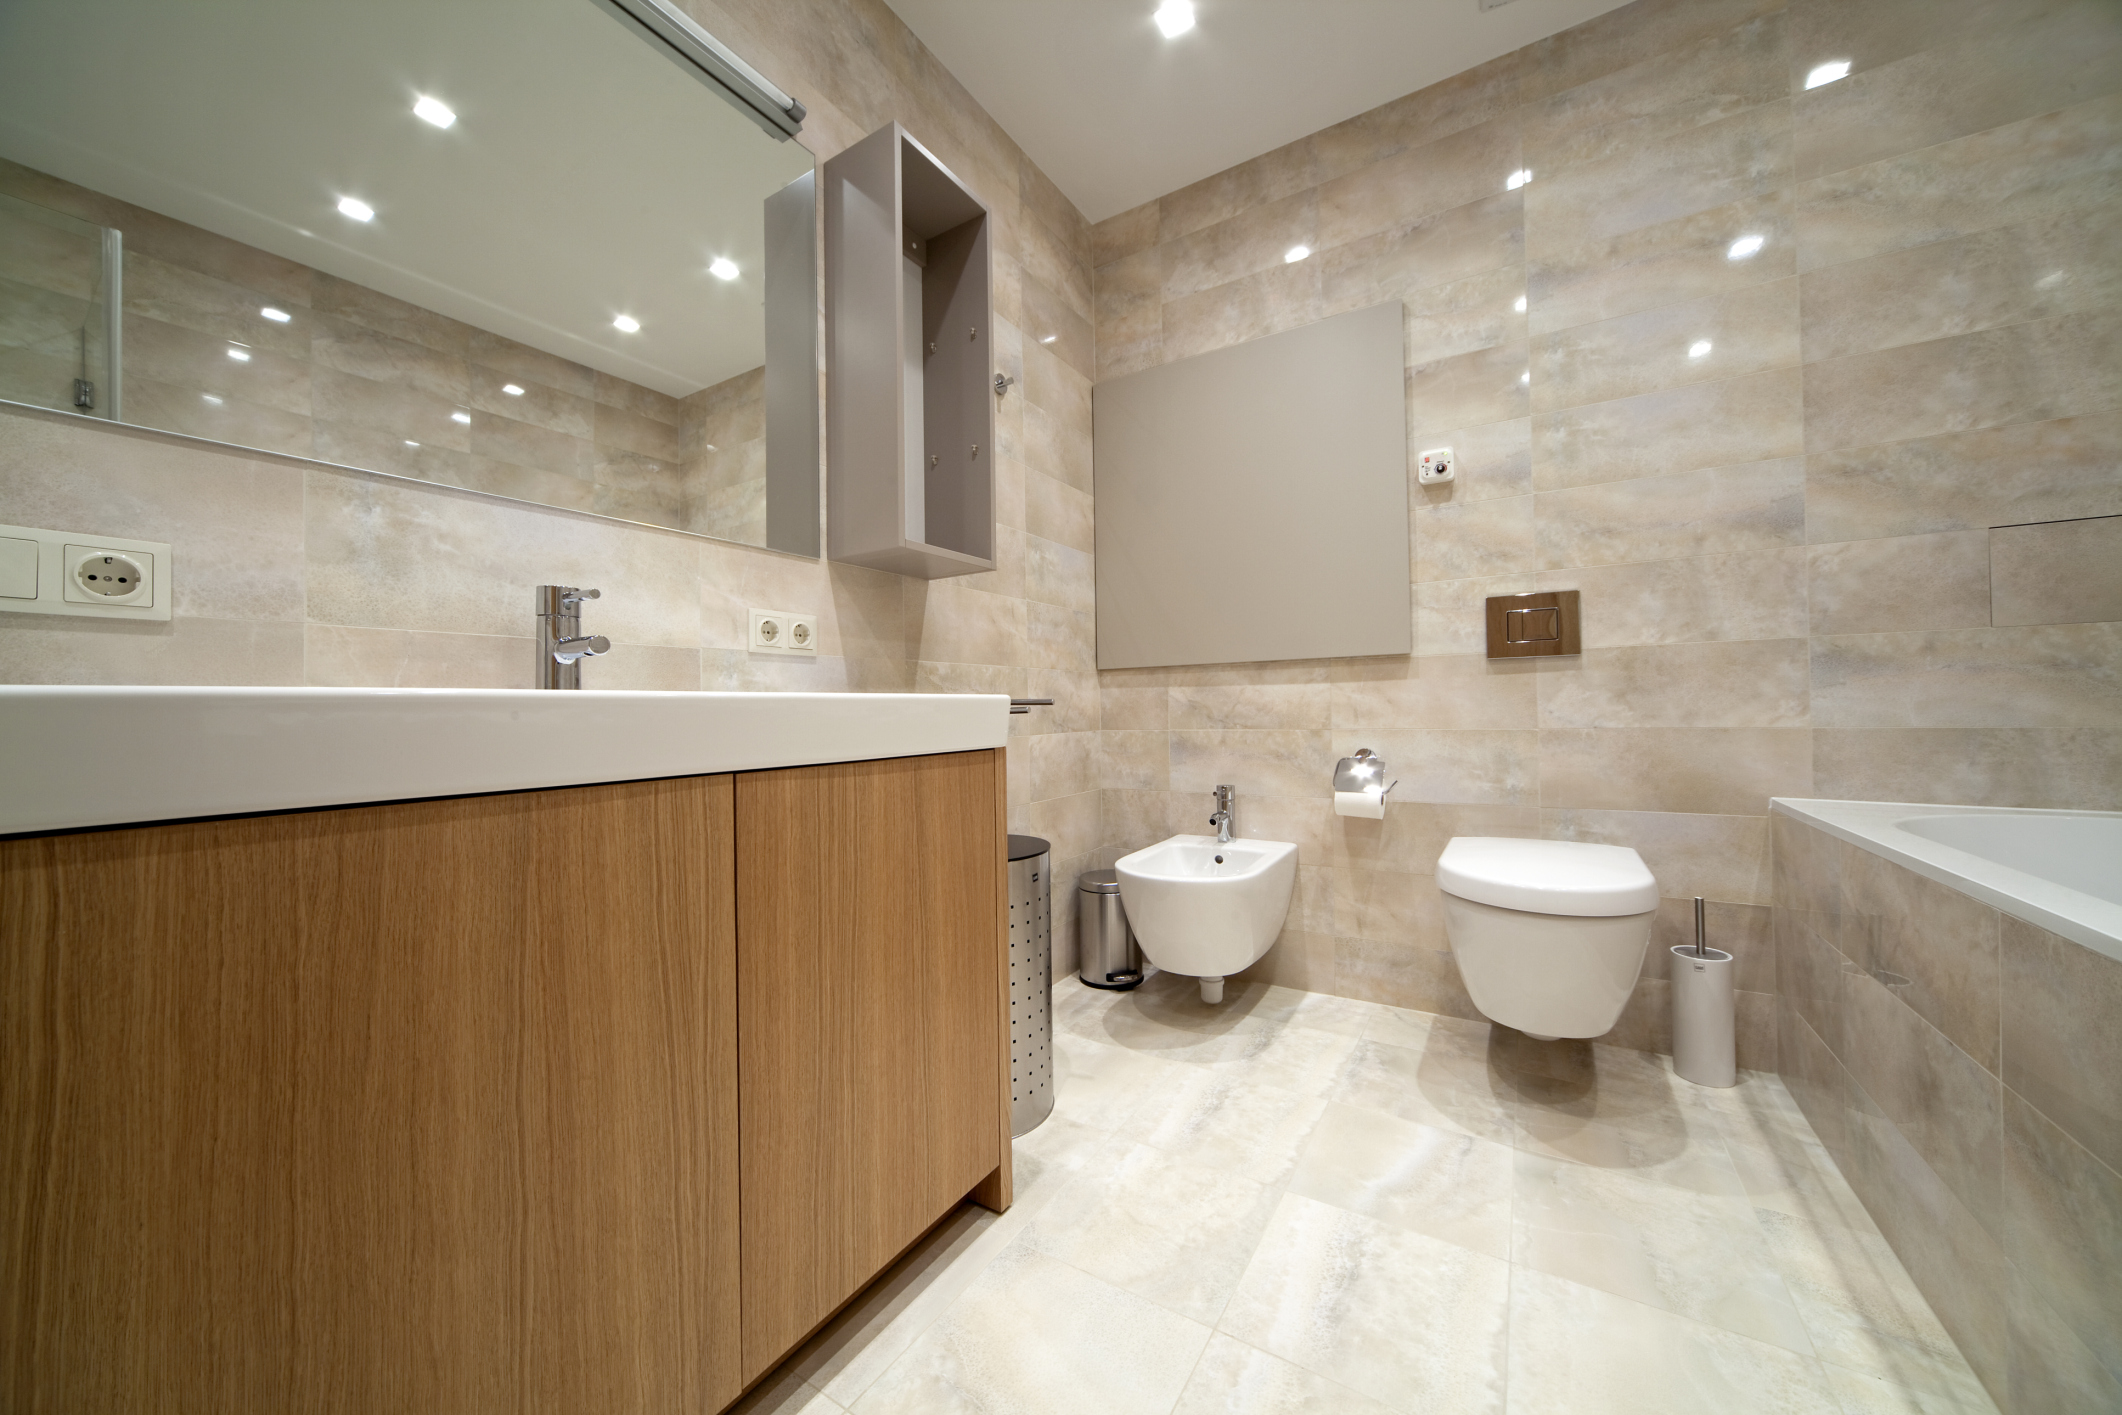 Remodel your bathroom despite being on a tight budget some lucrative ideas eco talk for Remodel a bathroom on a budget